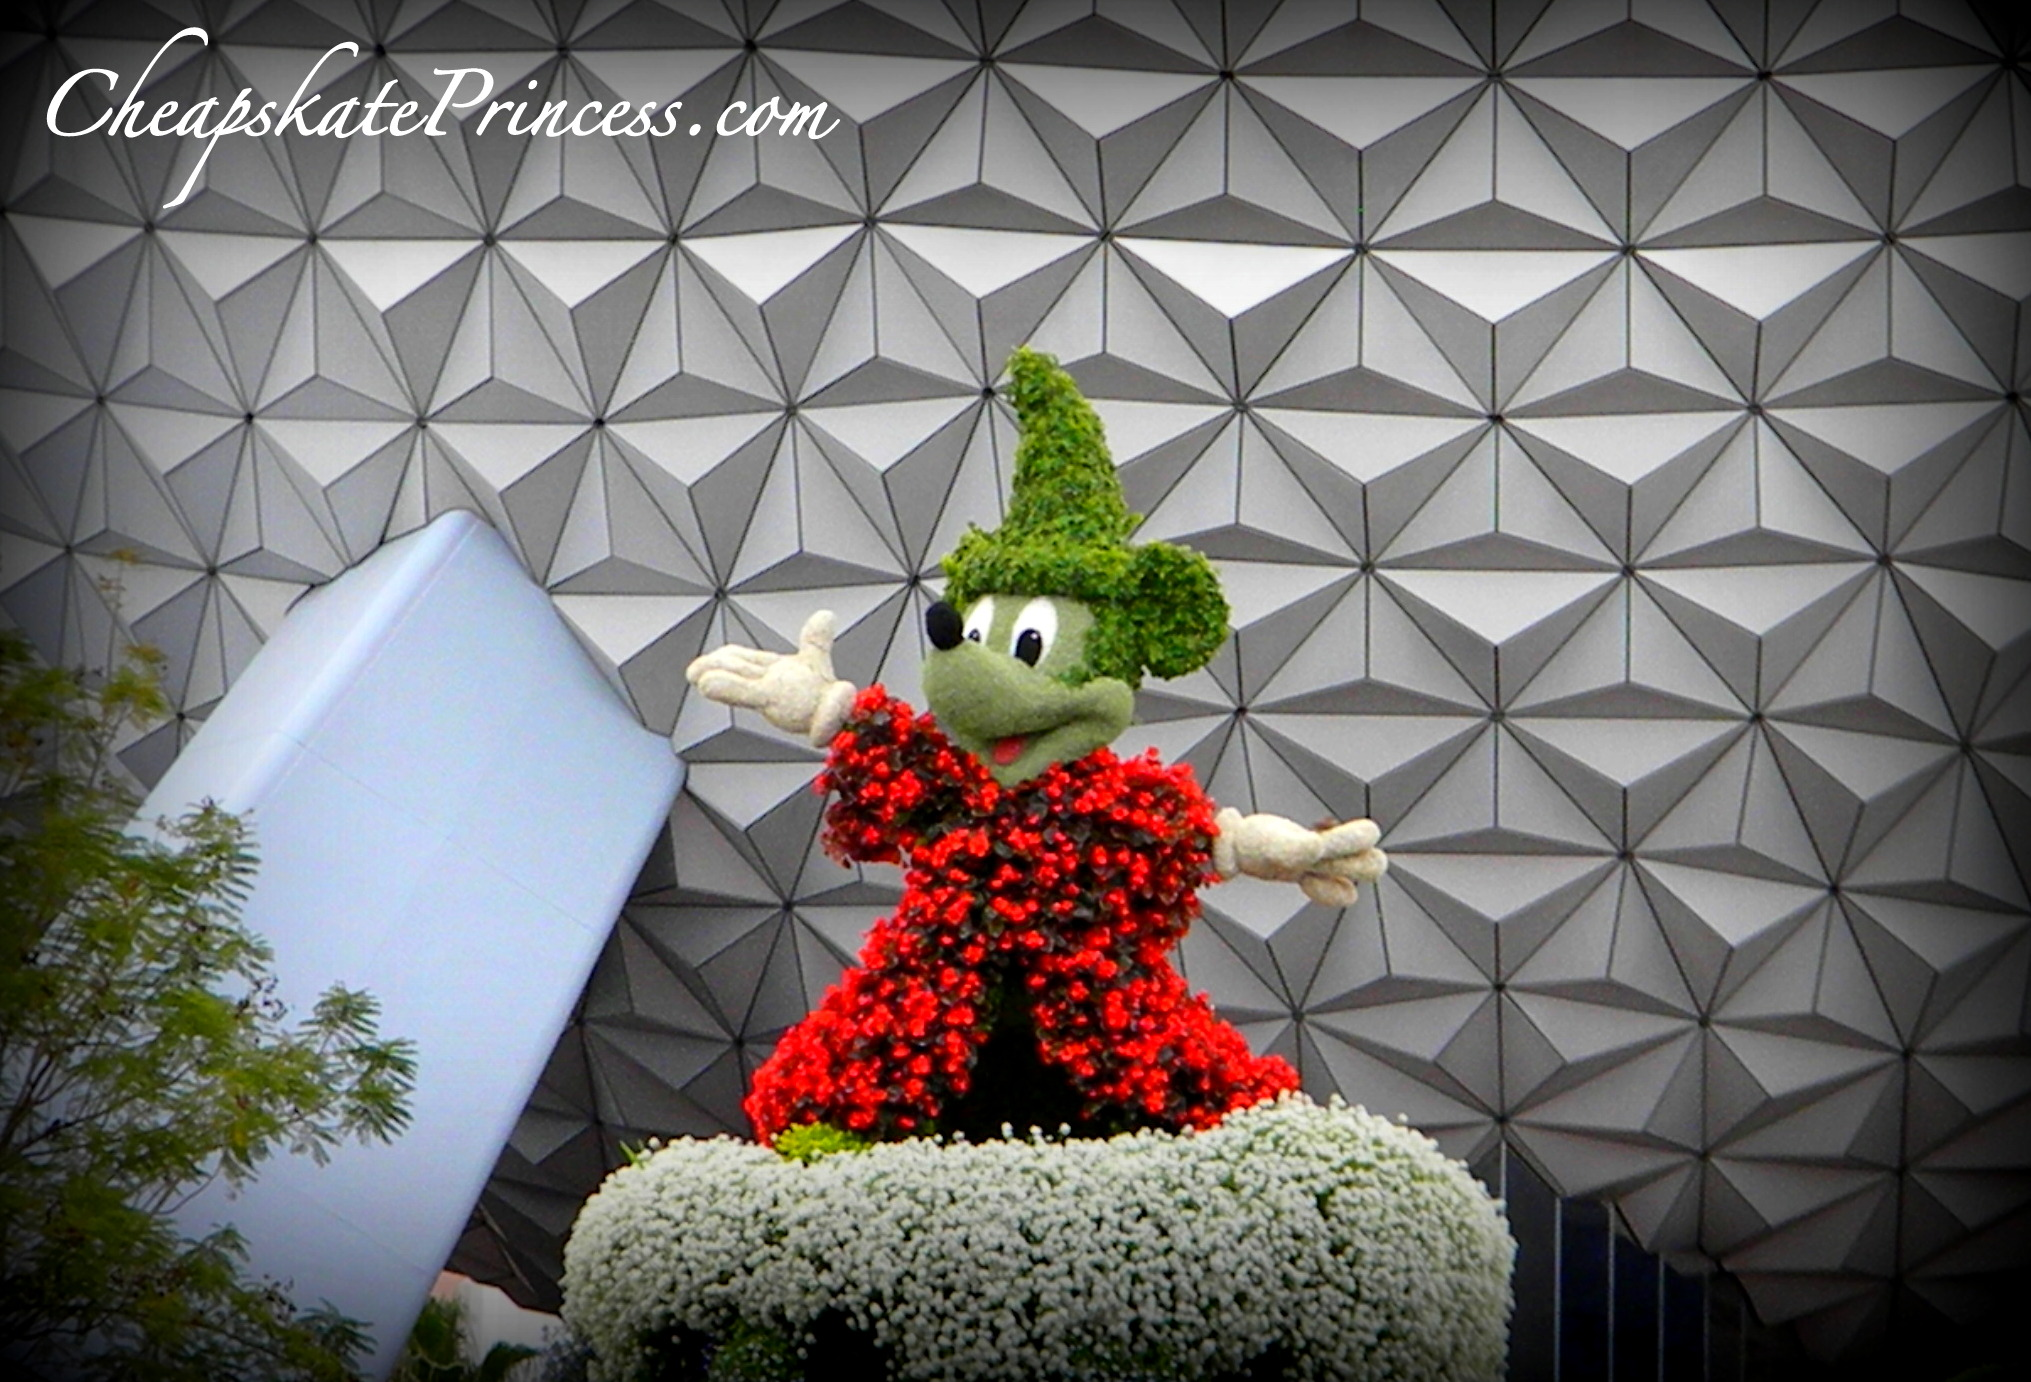 Mickey Mouse topiary, Mickey Mouse flowers, Mickey Mouse in Epcot, Epcot flowers, where is Mickey Mouse in Epcot,